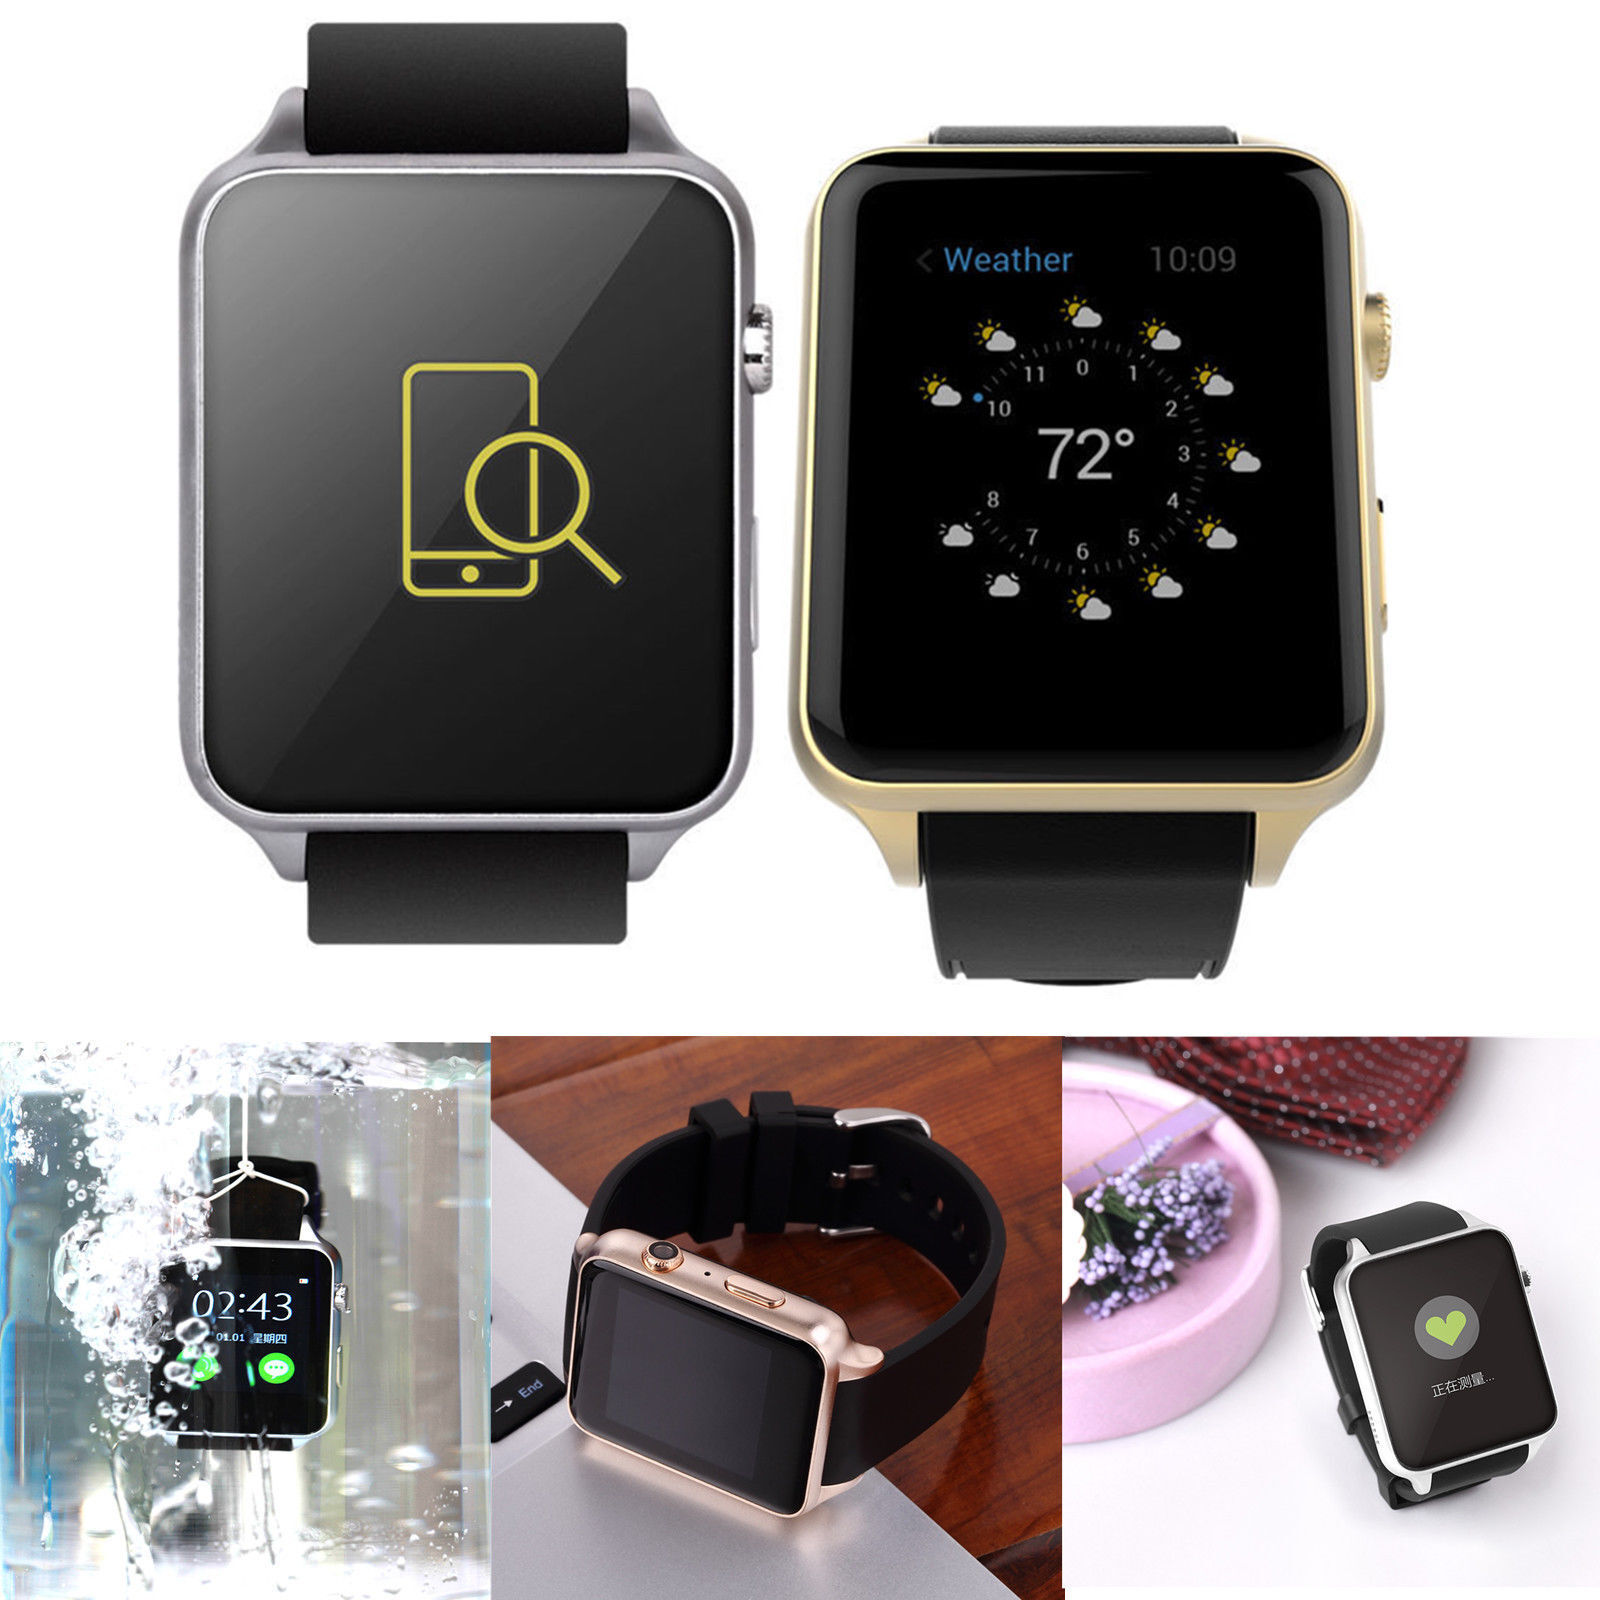 gadgets be as what enlarge predecessor looks i on the new lte watershed hands series watches moment watch internals same apple counts could its are phone